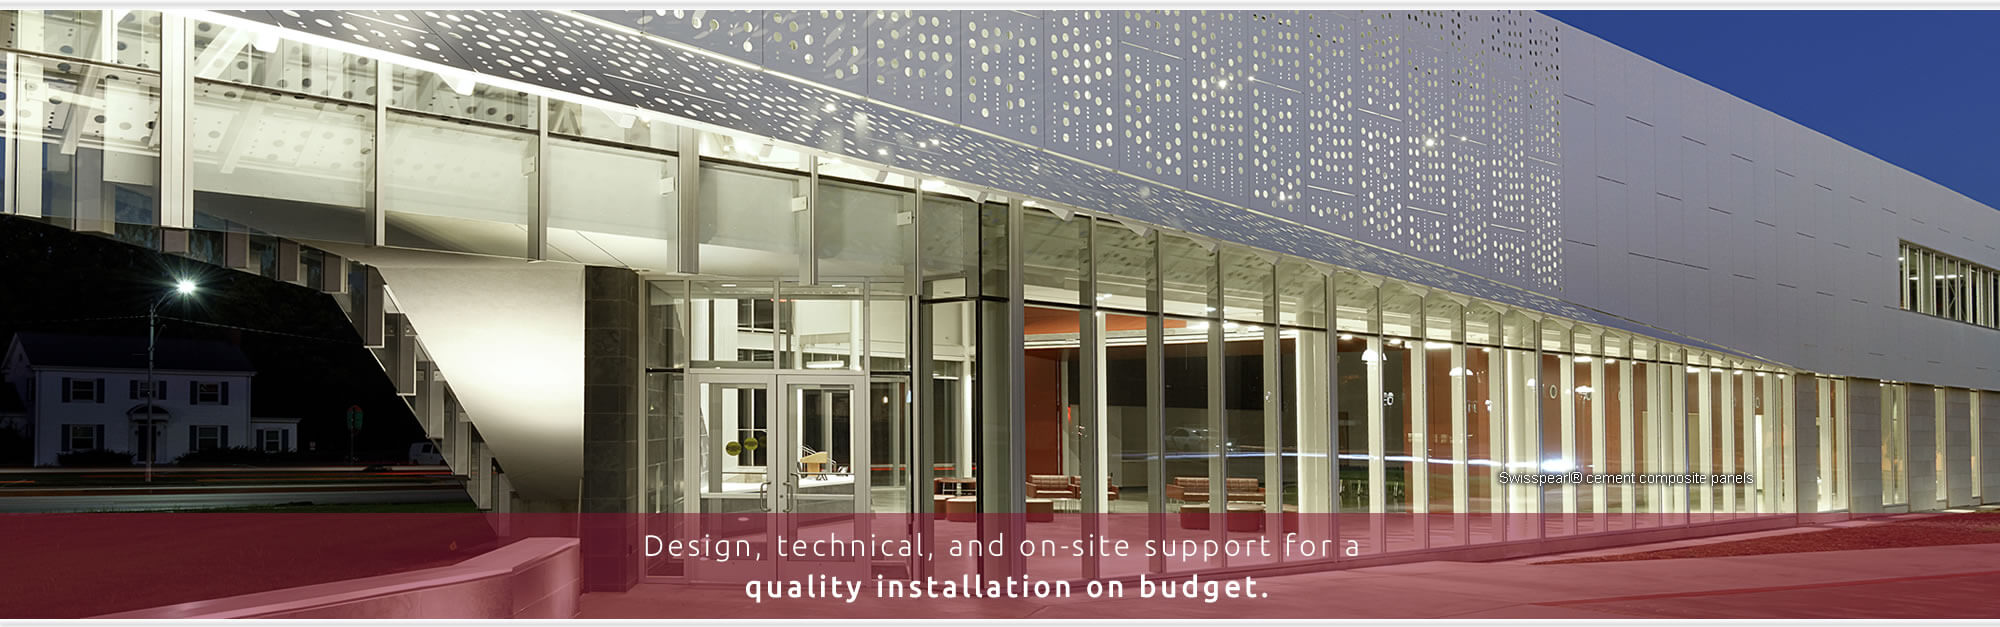 Exterior building panel systems swiss pearl millennium for Exterior architectural elements